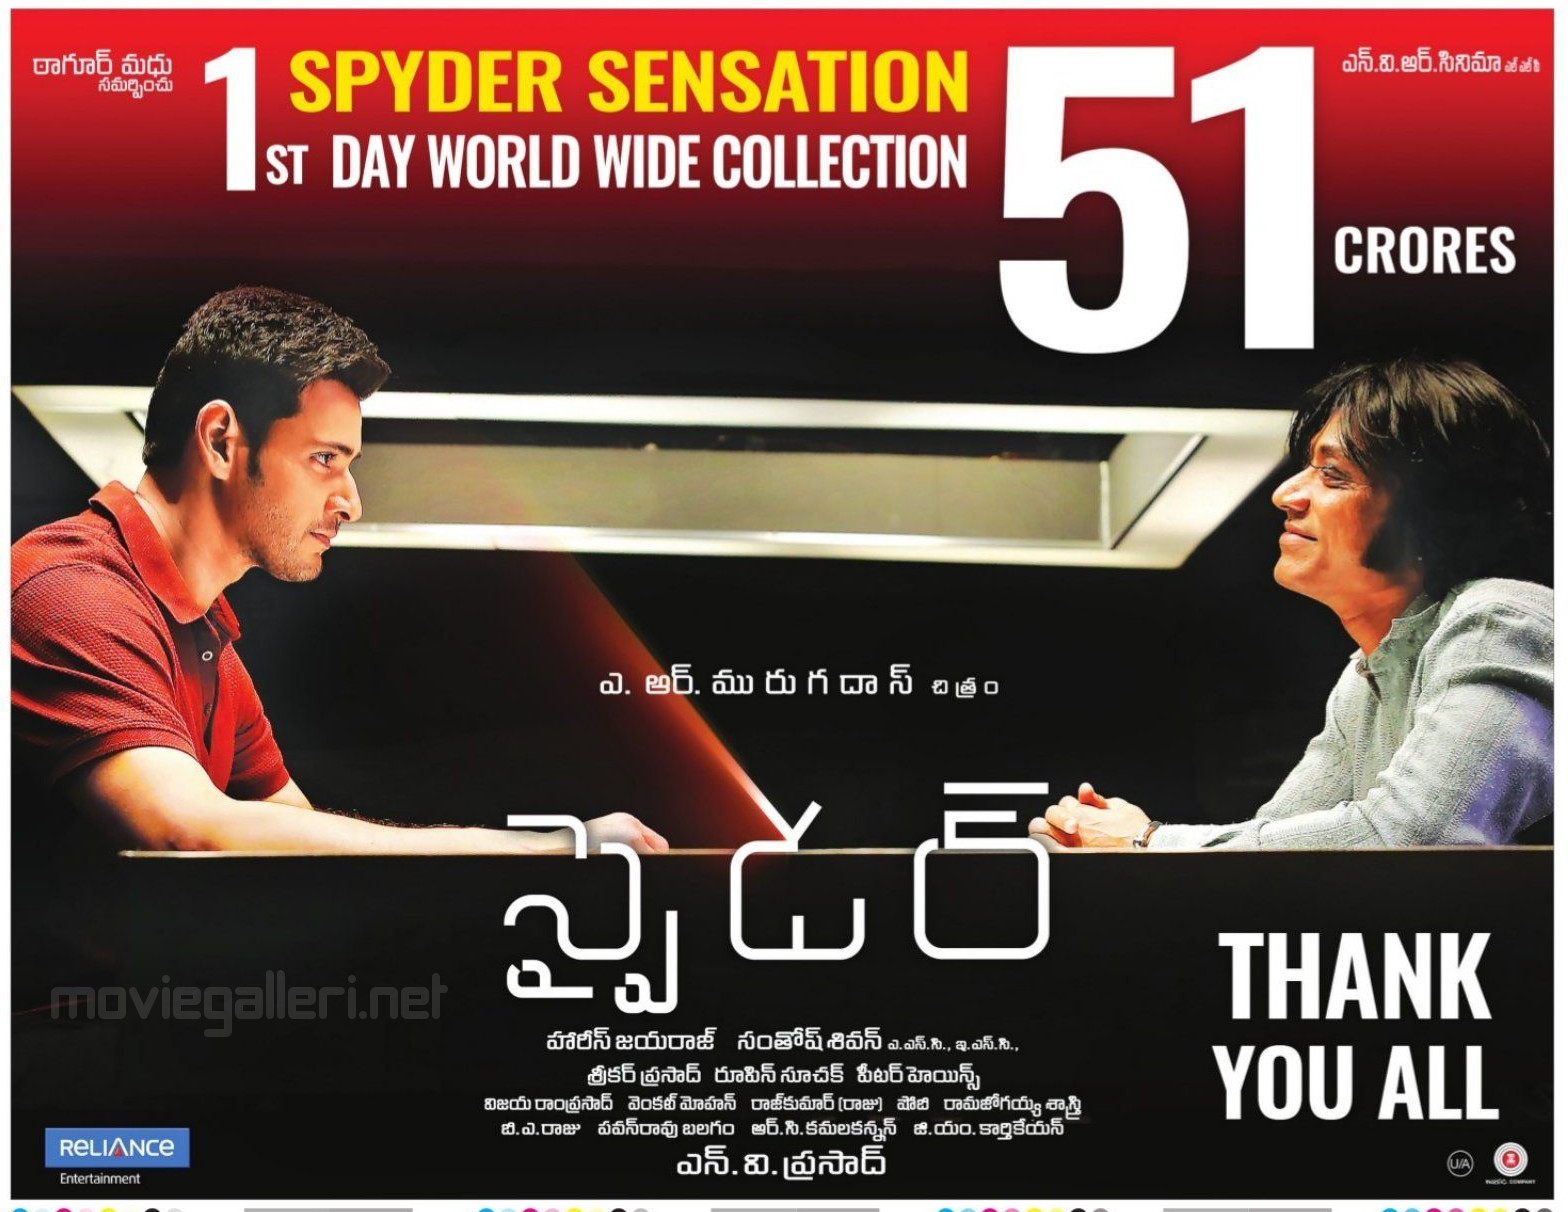 Mahesh Babu SJ Surya Spyder Movie collected 51 crores on first day